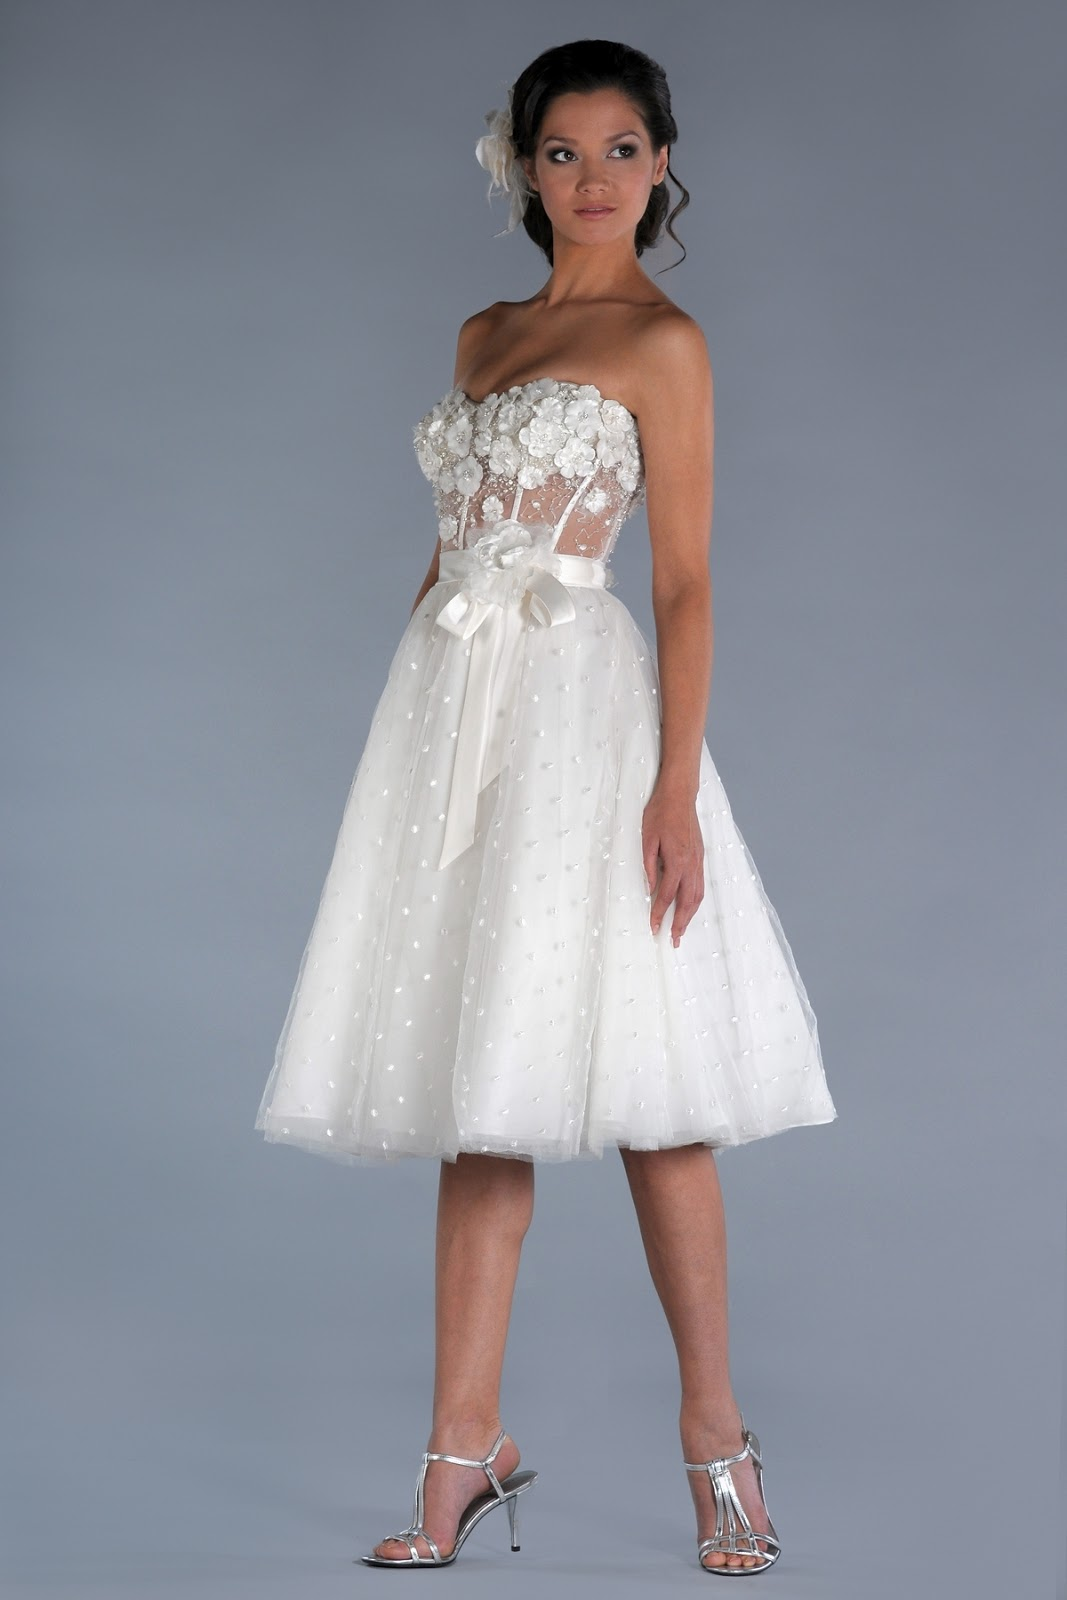 Wedding Dress For Short Brides : Dressybridal cute short wedding dresses for summer